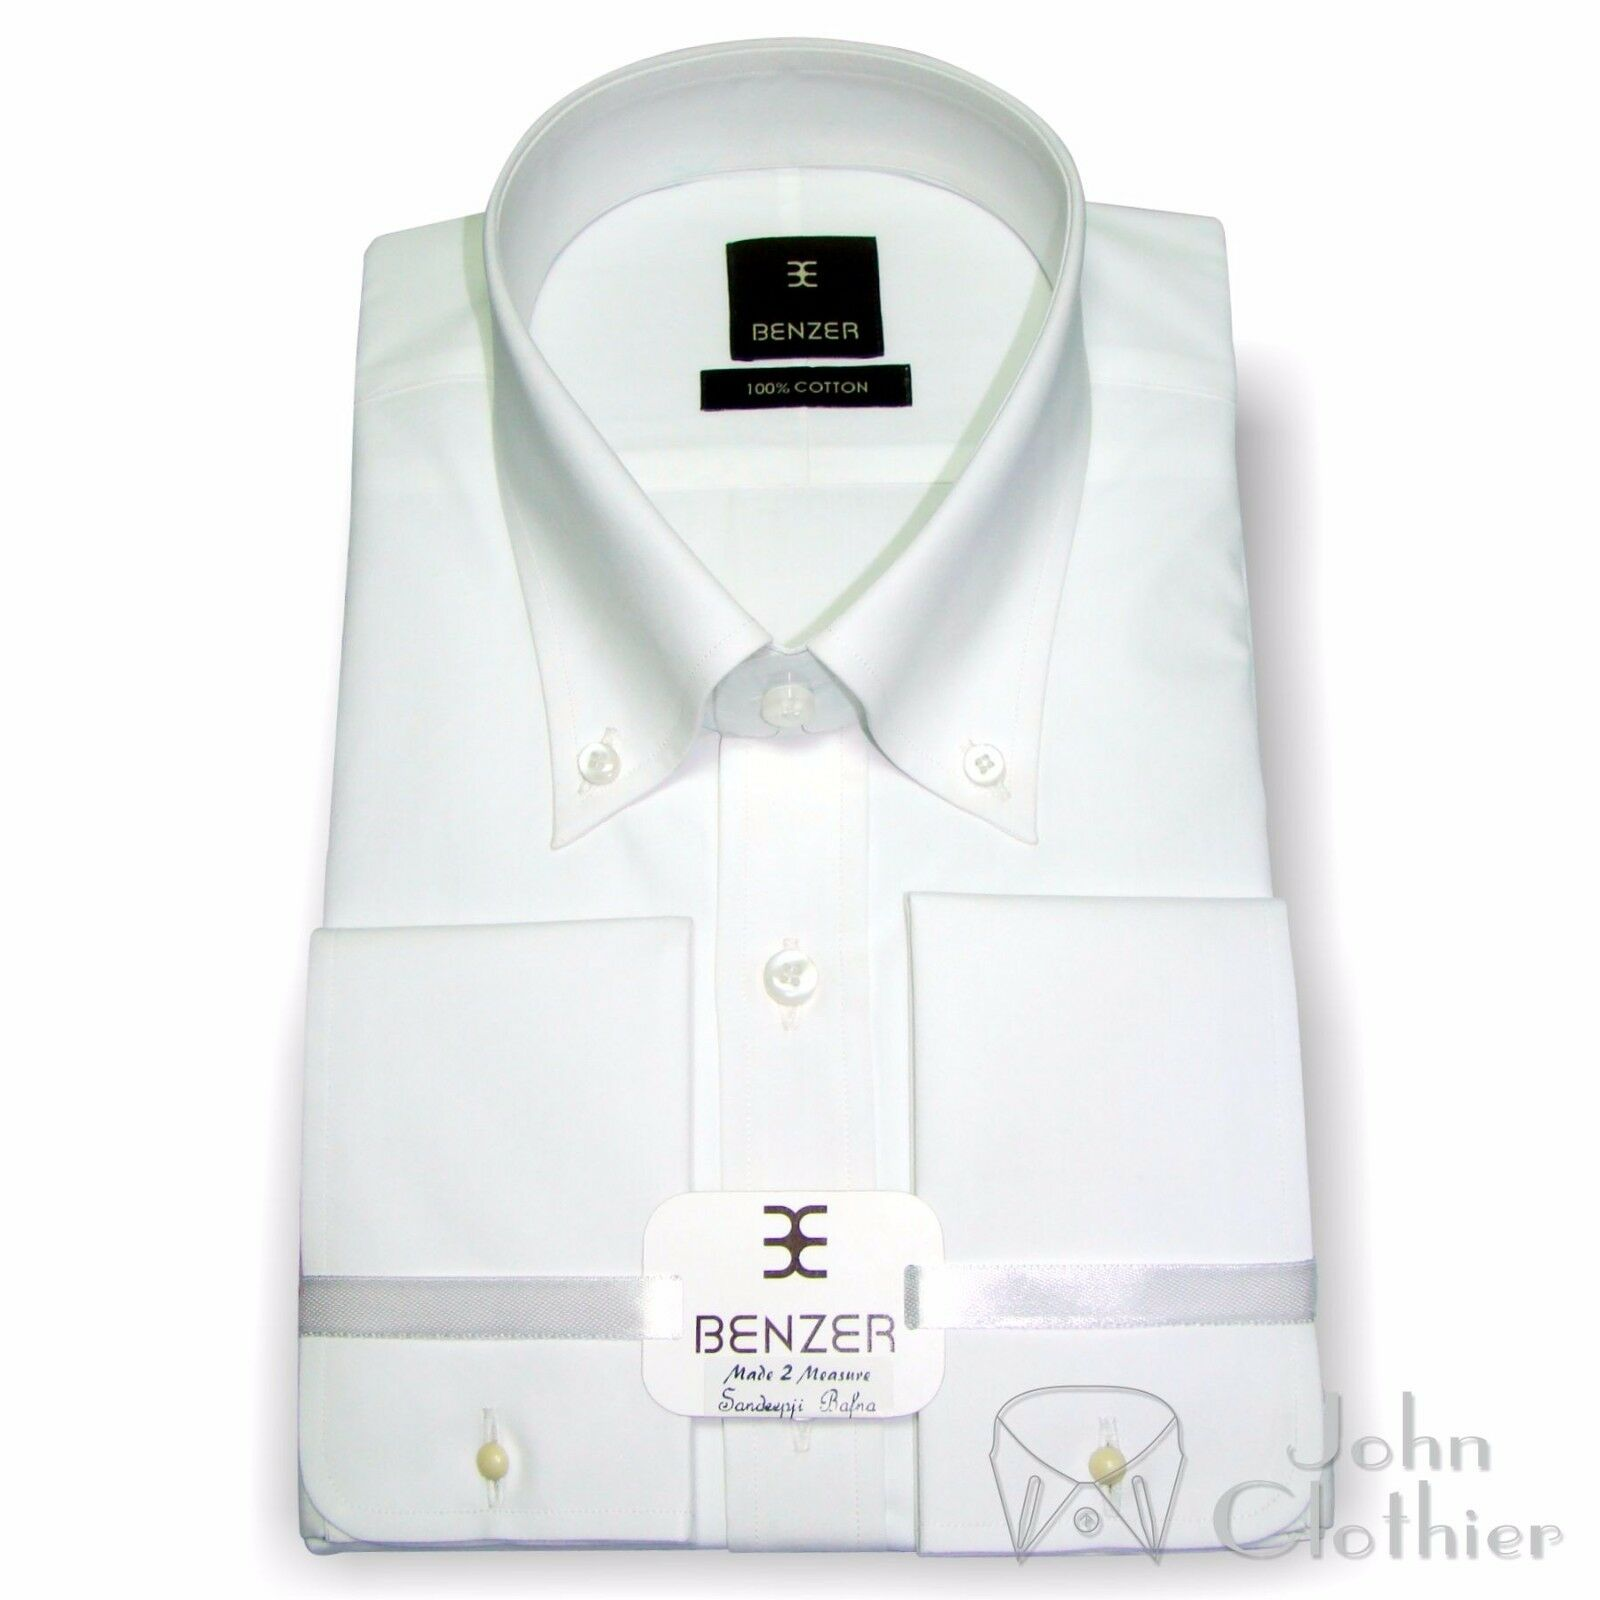 Button down collar Weiß Cotton Dress shirt High Quality Formal Work Wear Gents